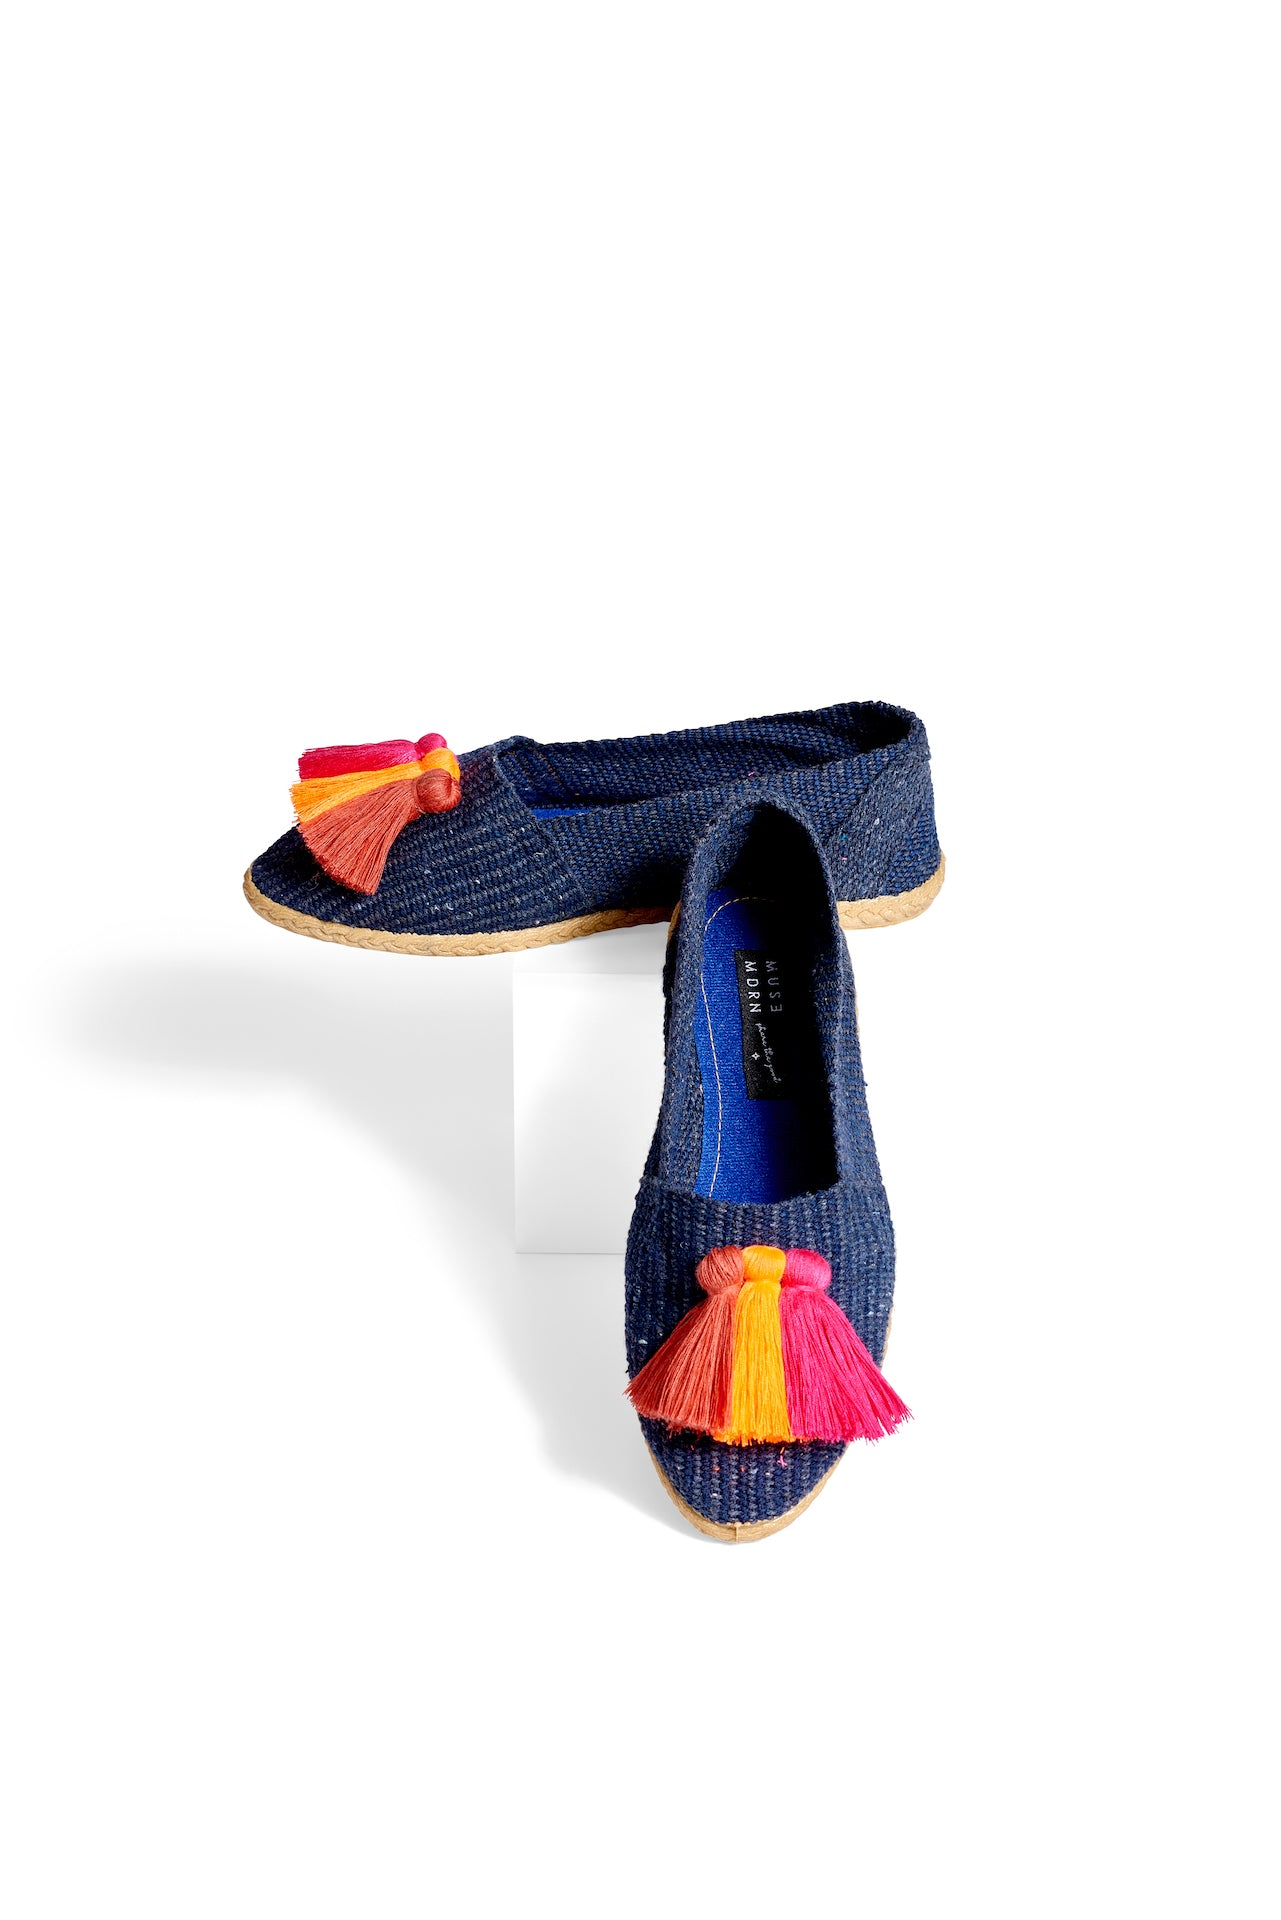 Woven Slides with Tassels- Indigo